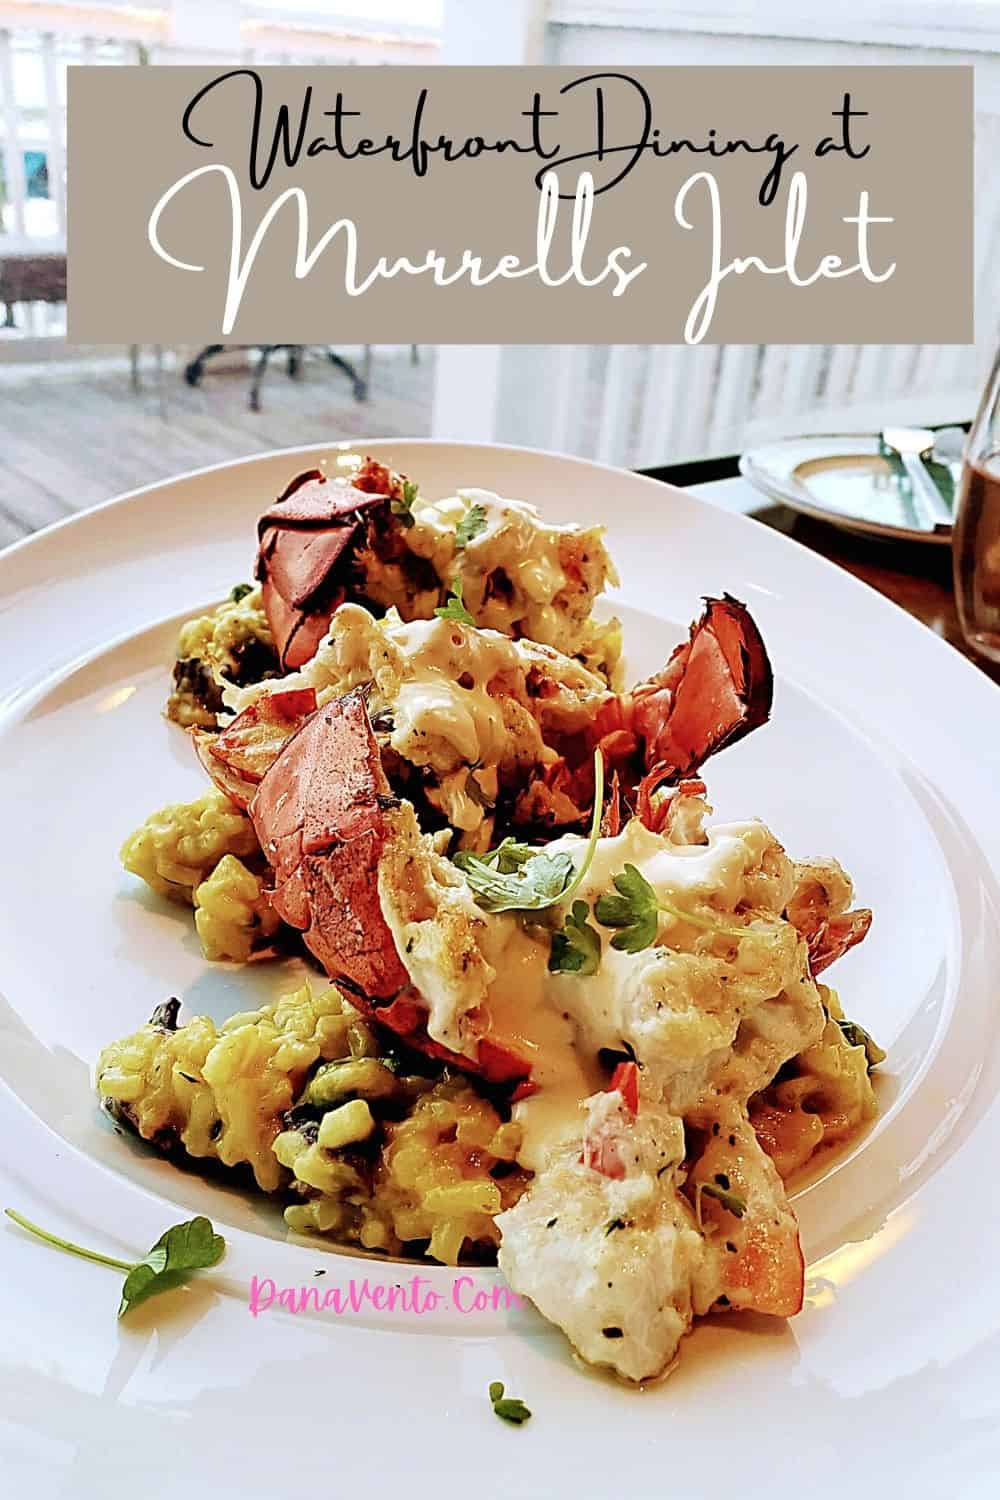 waterfront dining at Murrells Inlet Lobster